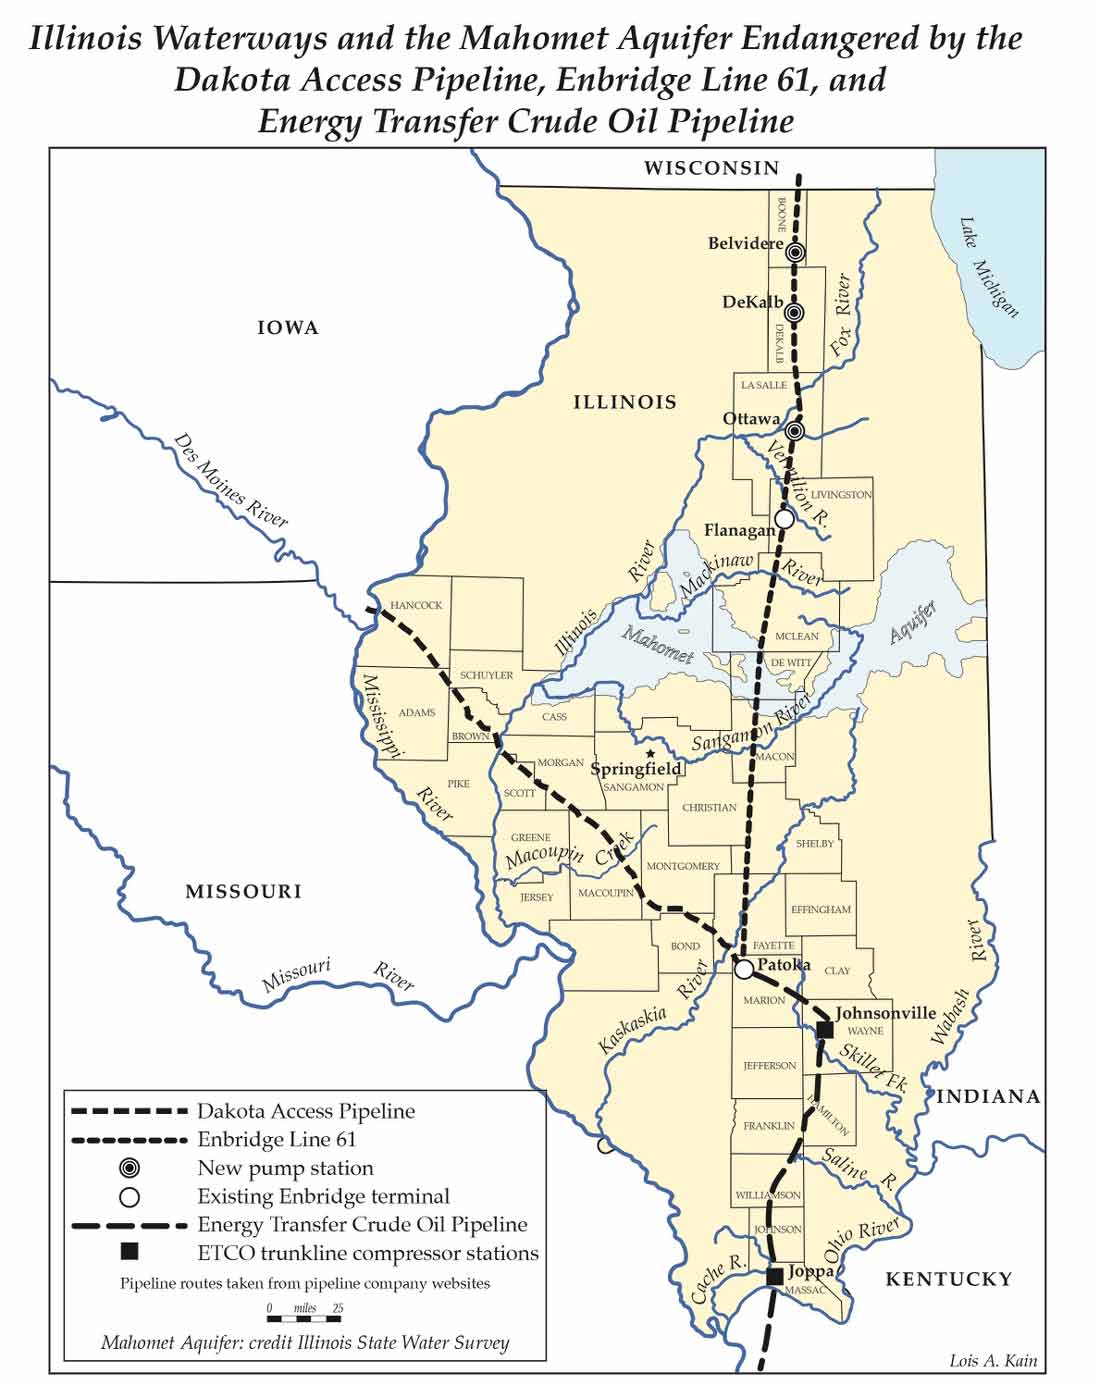 DAPL Illinois Water Resources and Pipelines map by Lois Kain